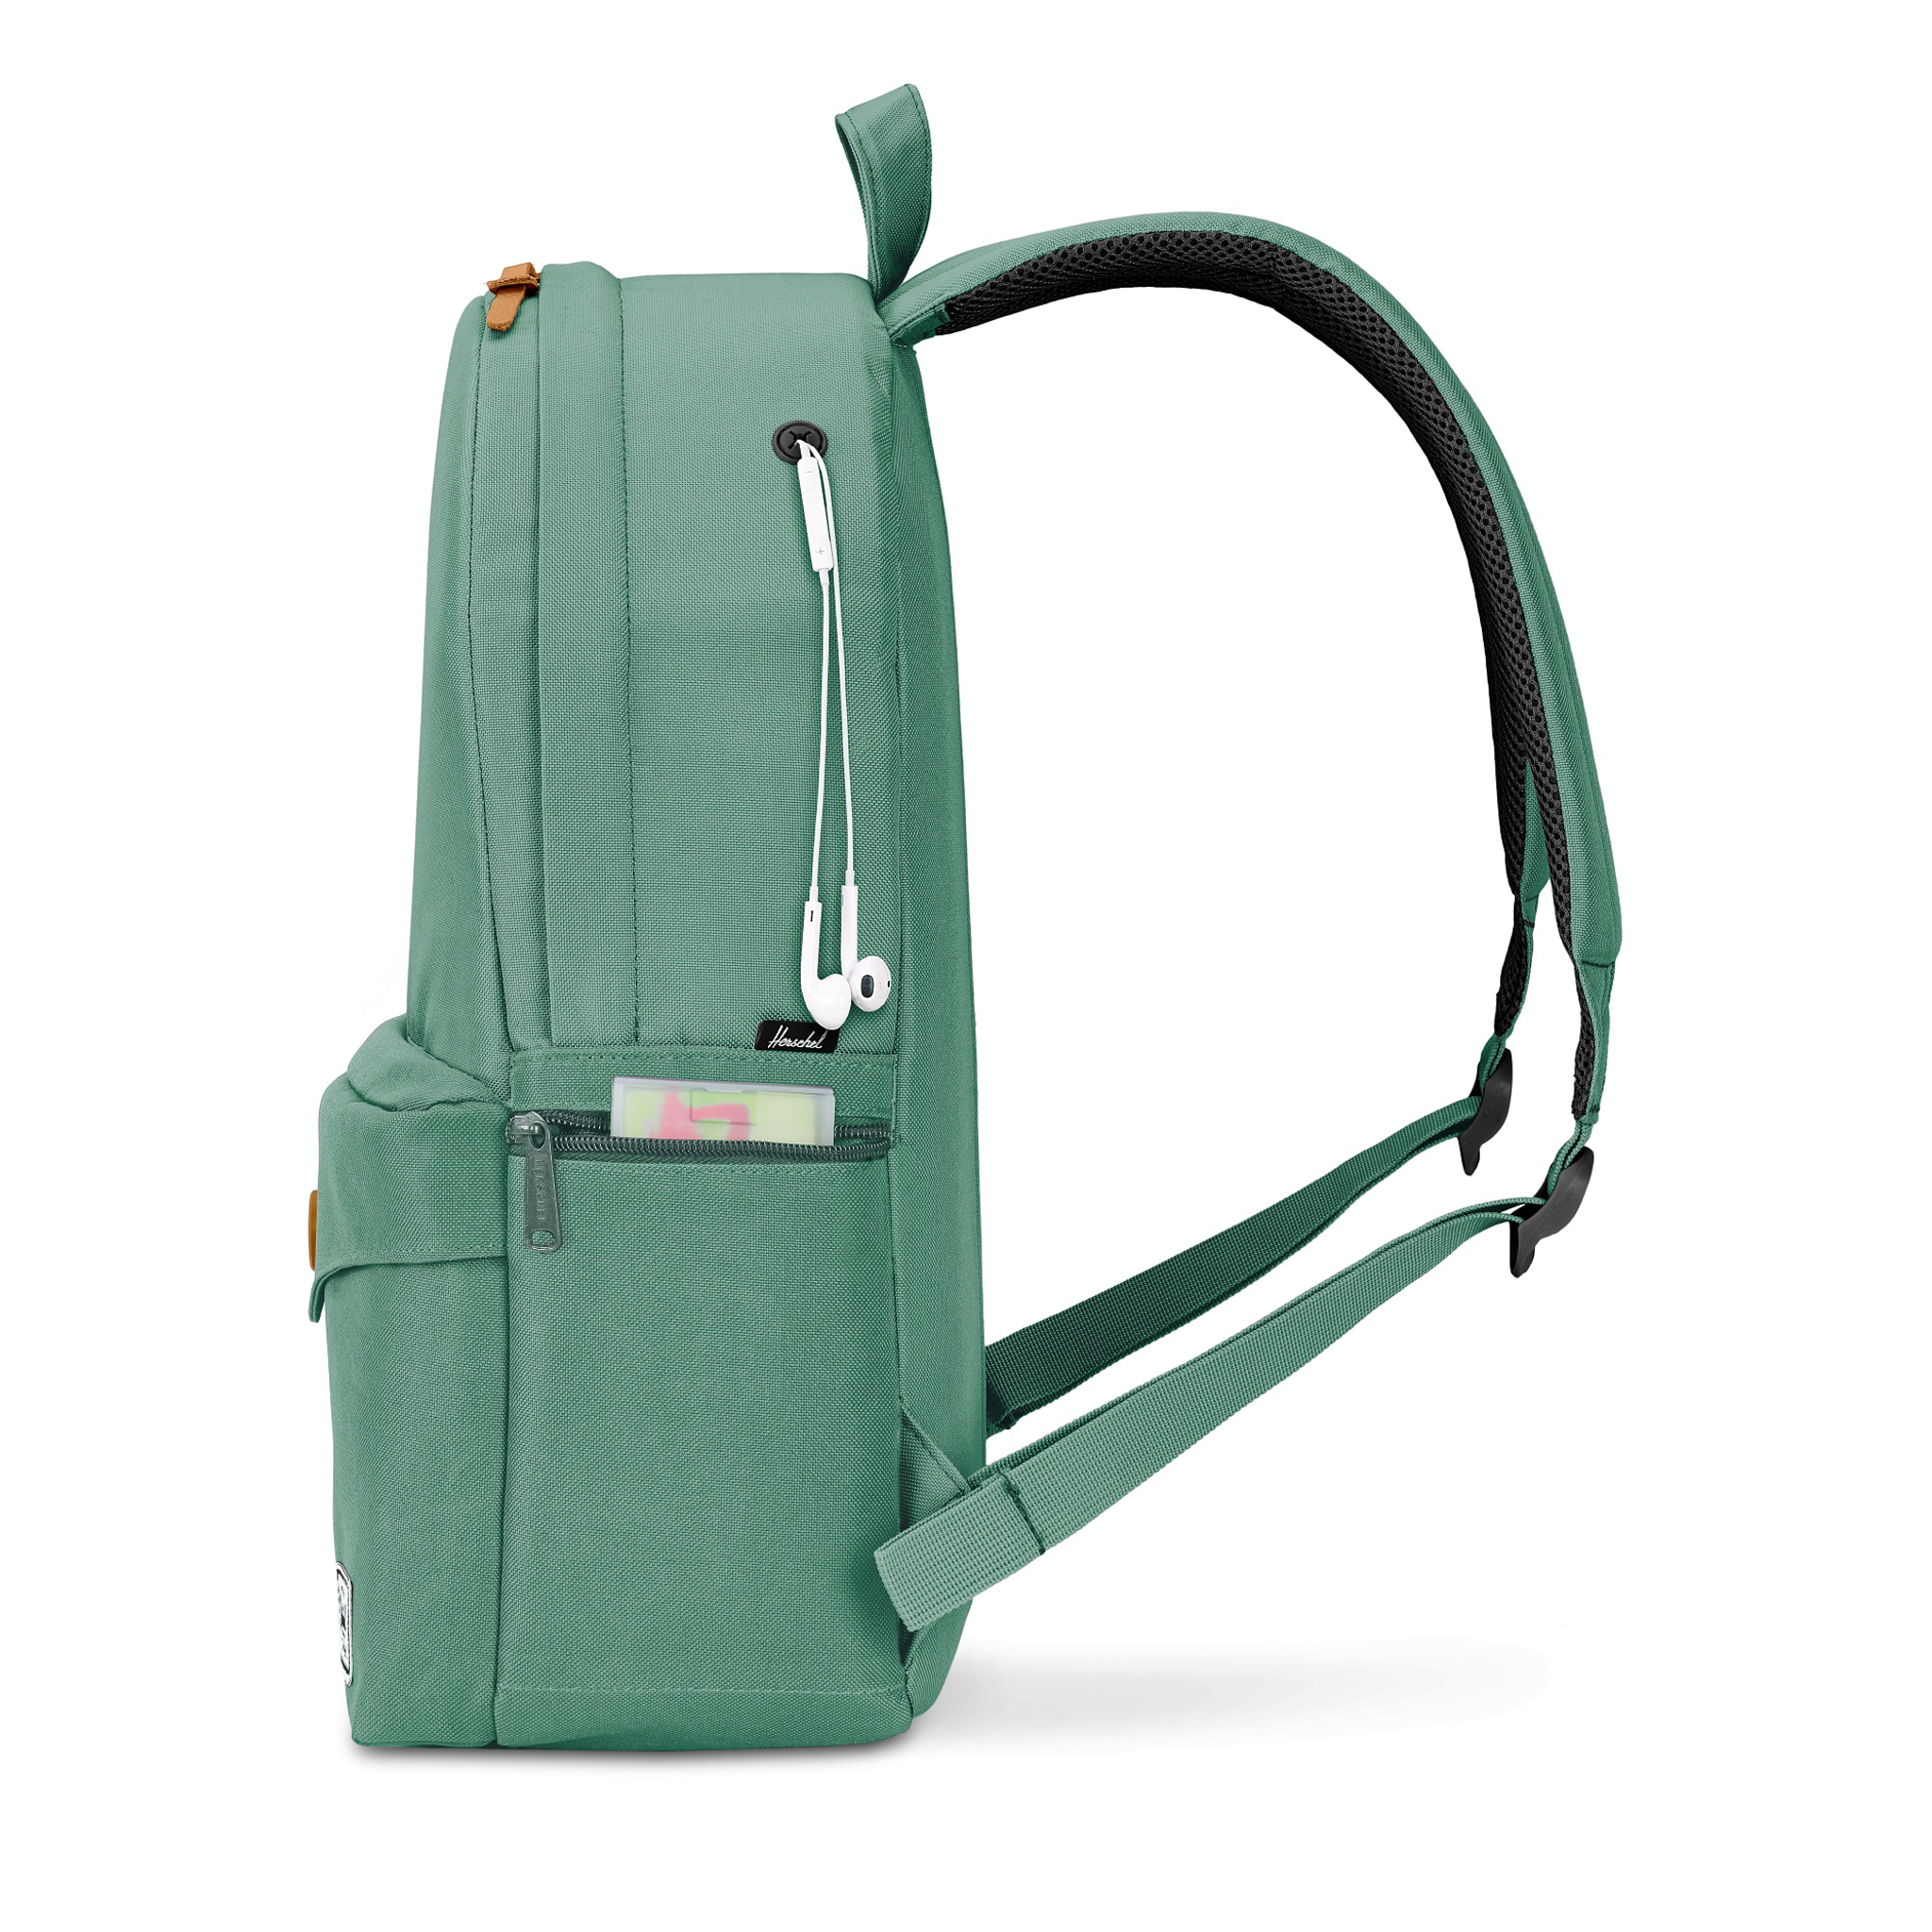 037e3b7019ac Where To Buy Herschel Backpacks In Sydney- Fenix Toulouse Handball